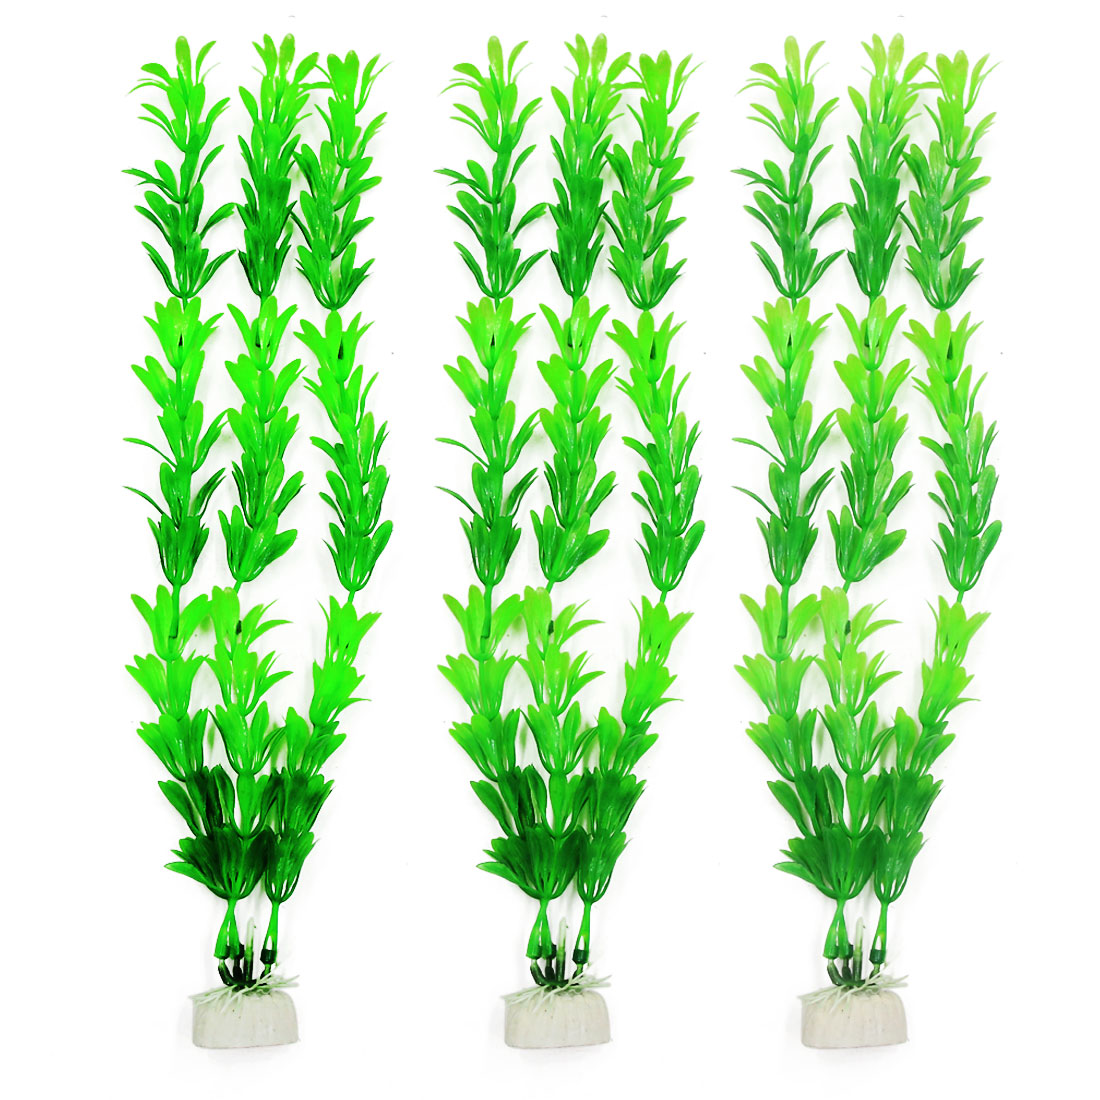 "12.2"" Green Plastic Water Plants for Fish Aquarium 3 Pcs"